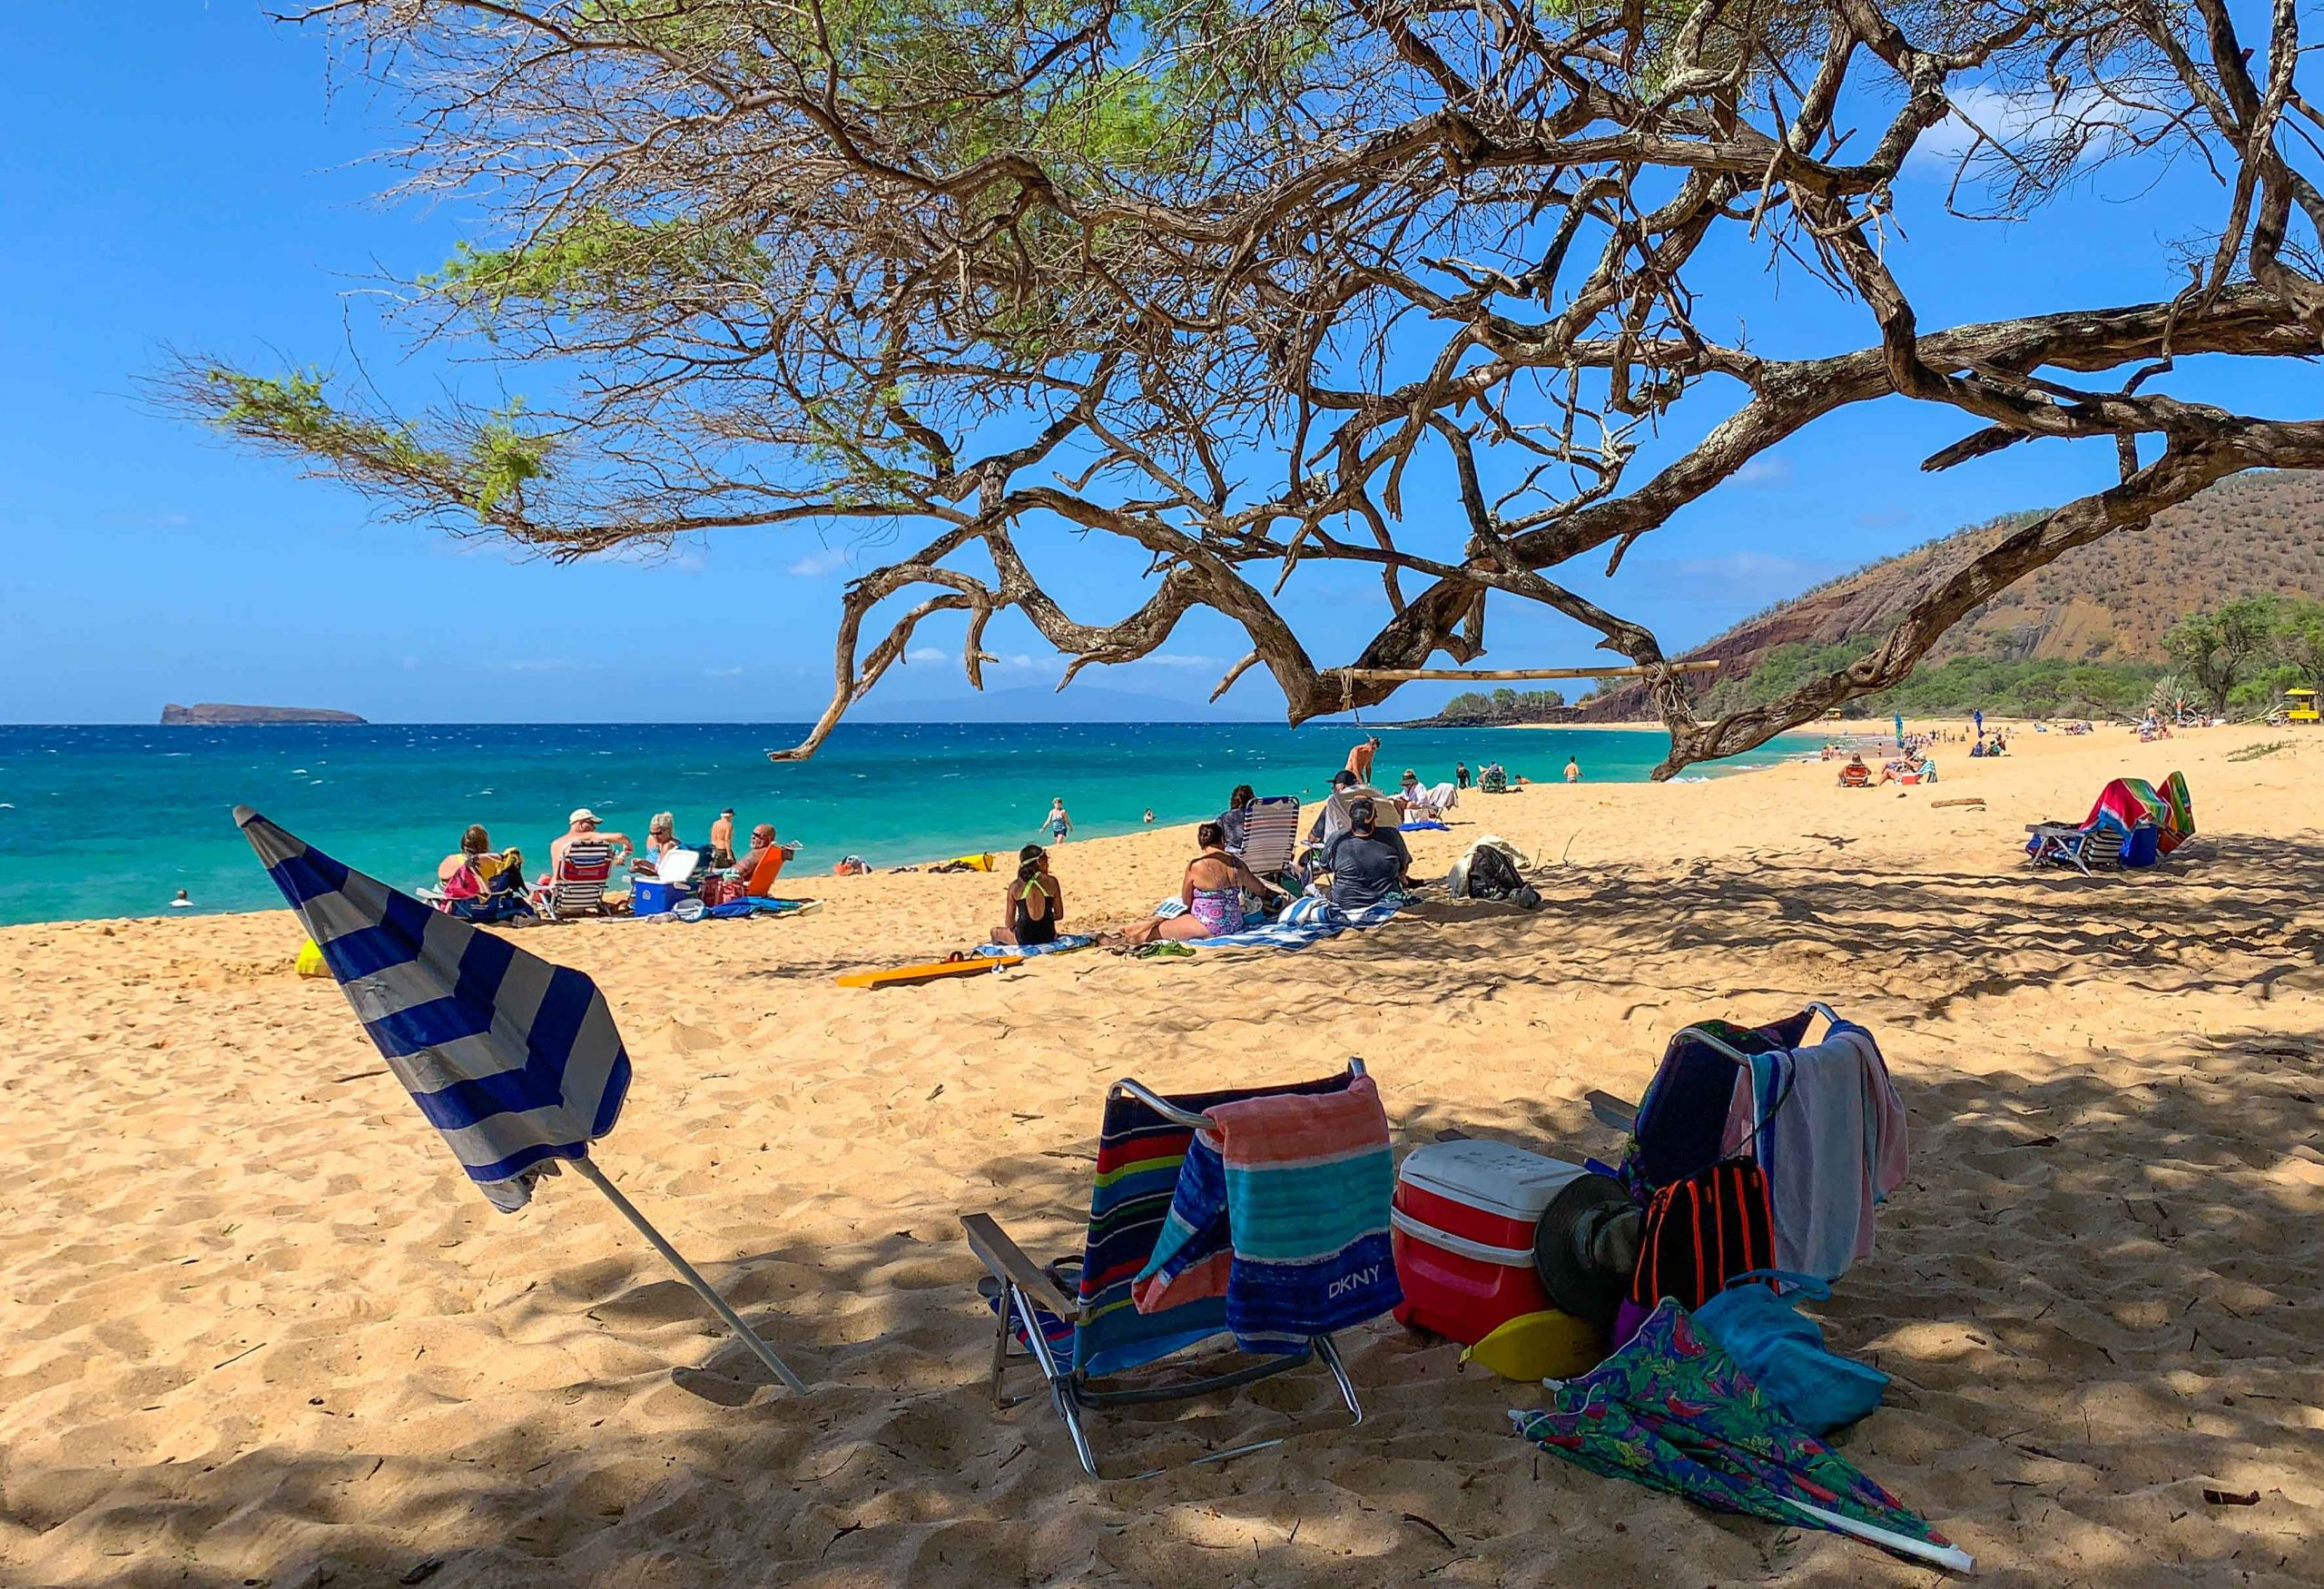 Maui's Vacation Rental Occupancy Climbed to 52.4% in February; Highest during Pandemic